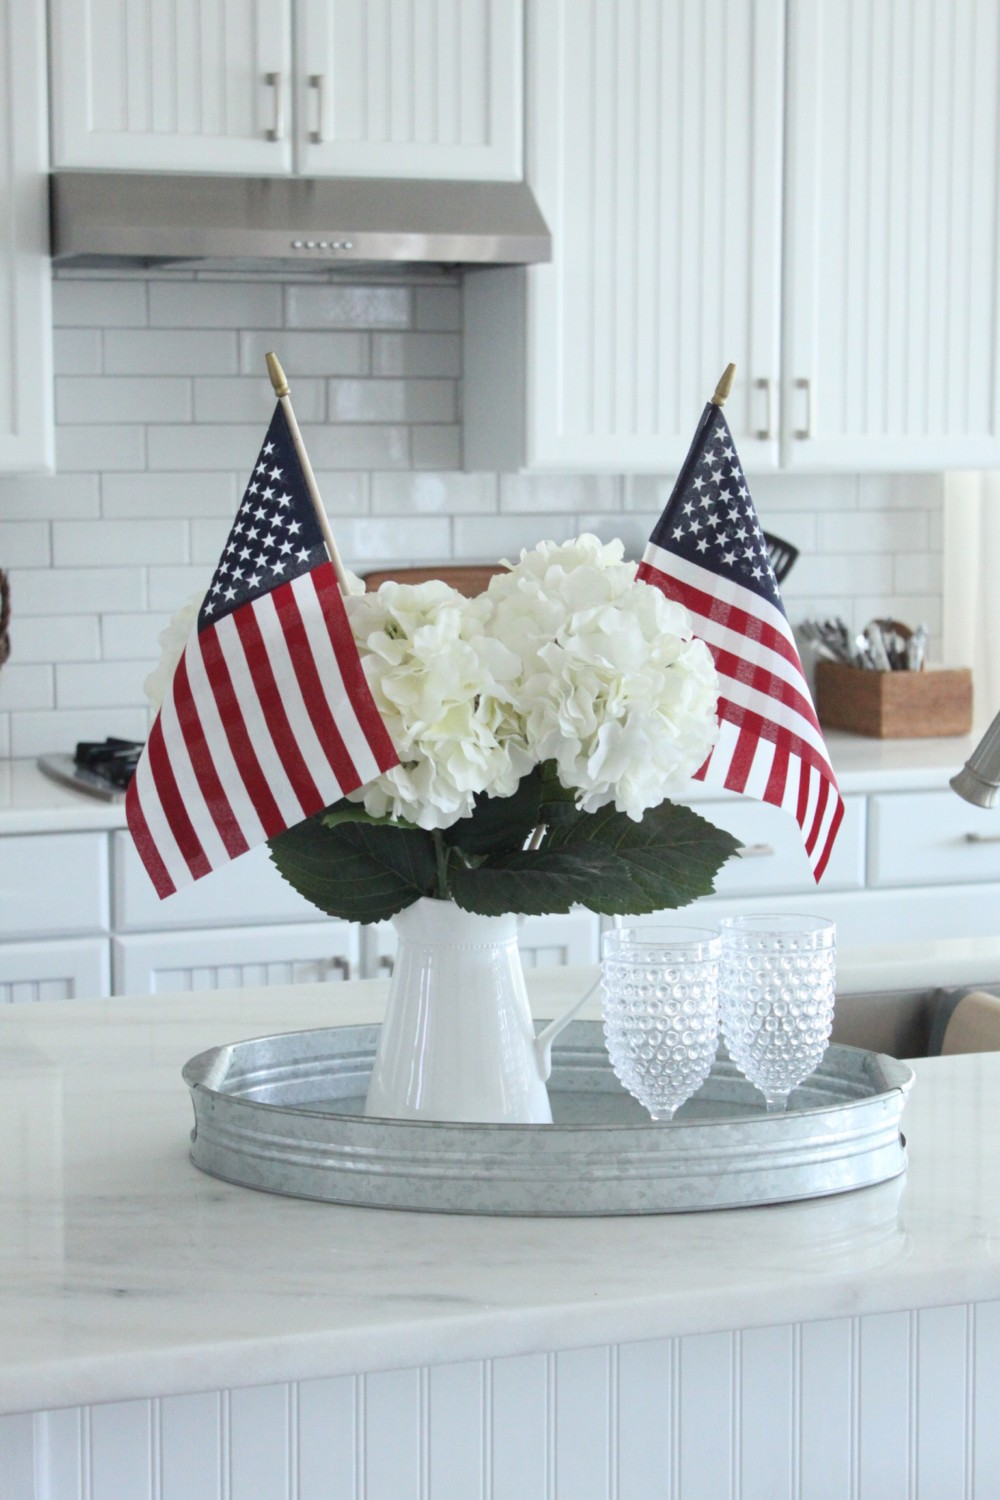 Patriotic kitchen - As Usual I Kept Things Pretty Simple In Here With A Classic White Kitchen It S Easy To Add A Variety Of Colors And Seasonal Accents